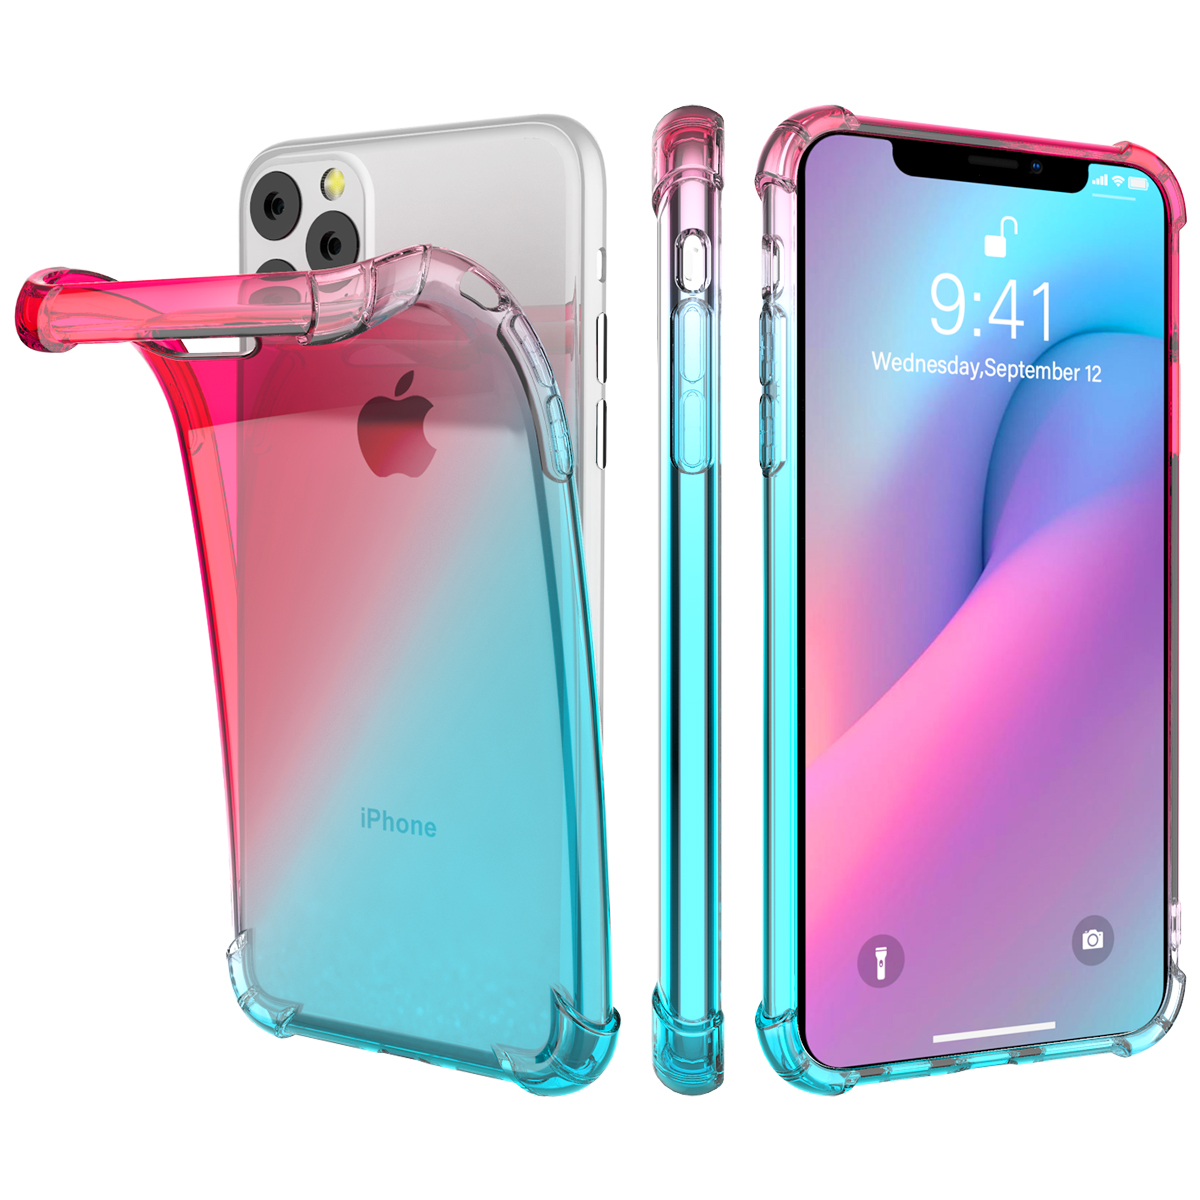 Gradient Soft TPU Case for iPhone 11/11 Pro/11 Pro Max 11